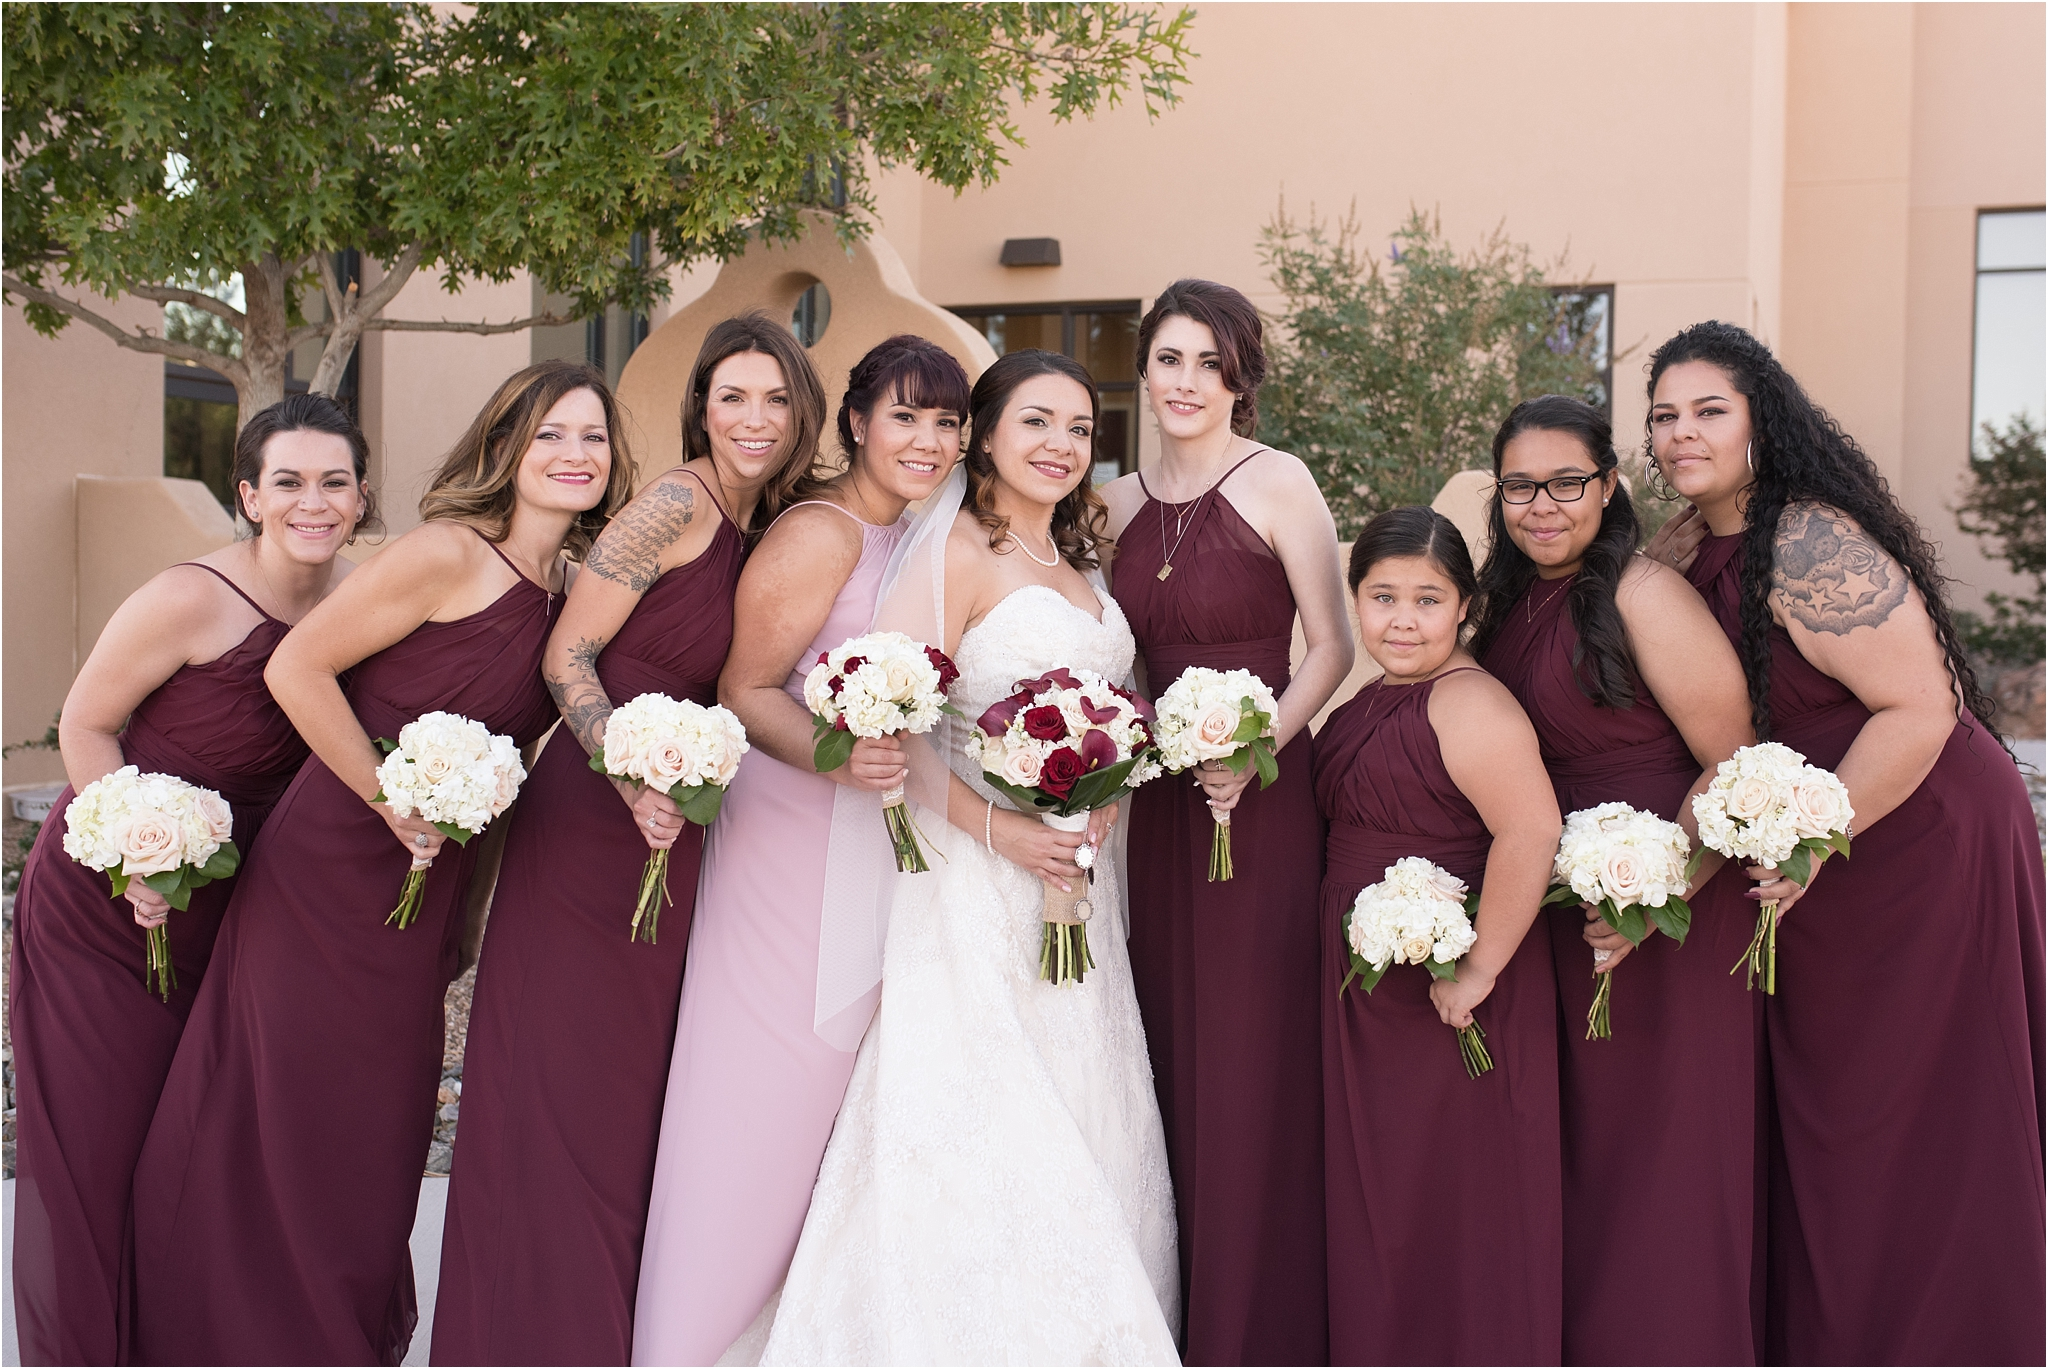 kayla kitts photography - albuquerque wedding photographer - hairpins and scissors - a cake odyssey - new mexico wedding photographer_0078.jpg